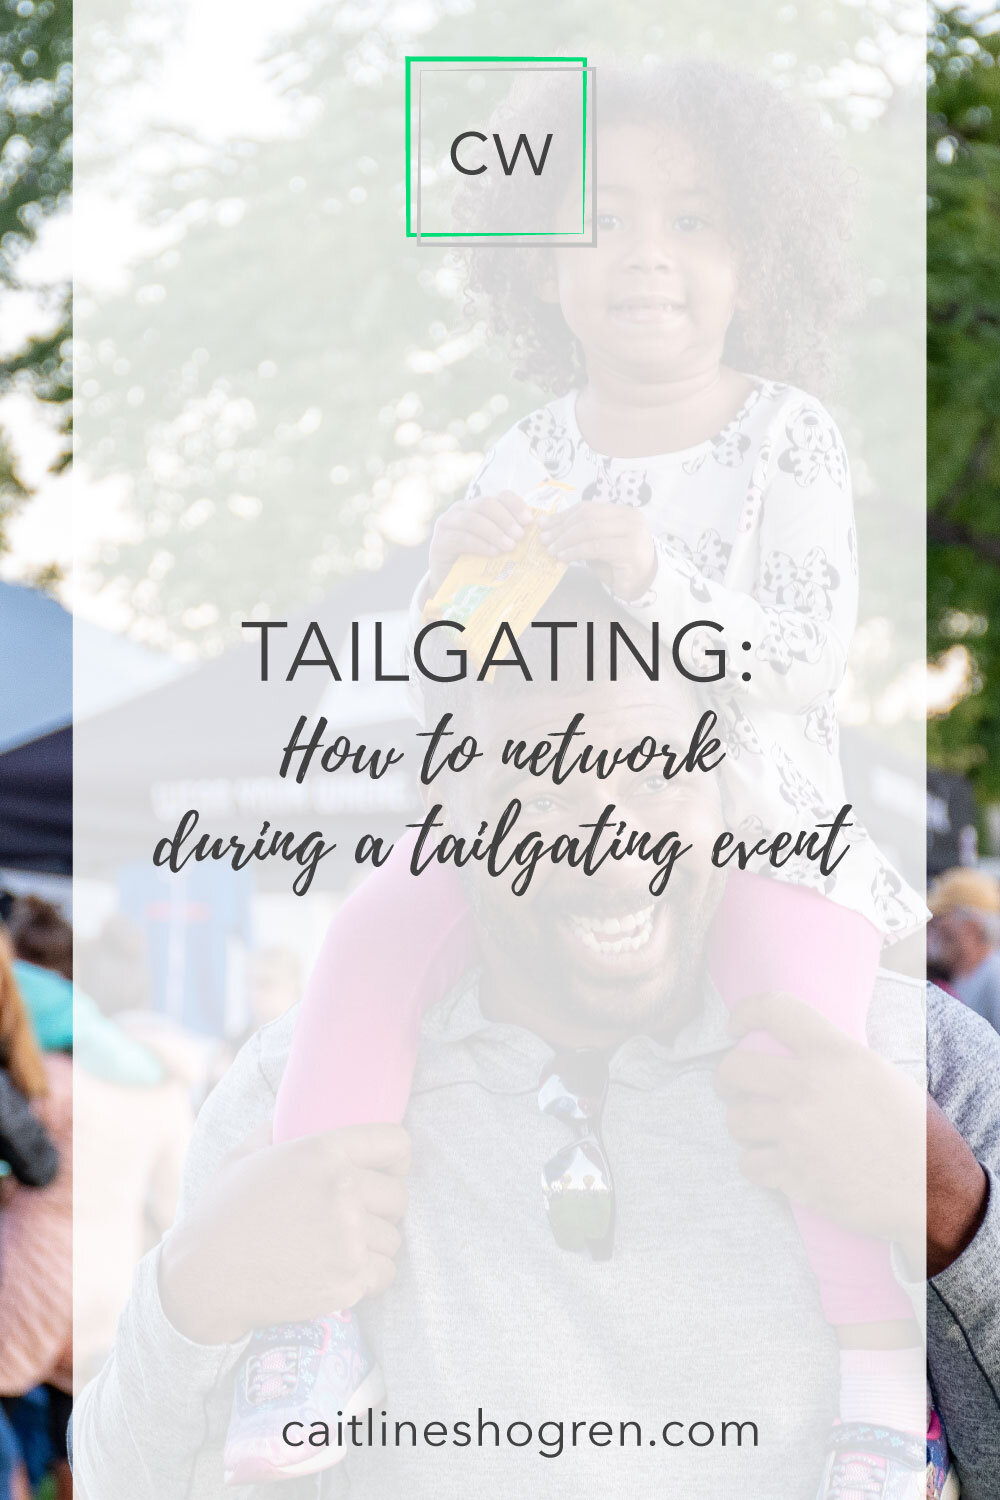 how-to-network-tailgating3.jpg